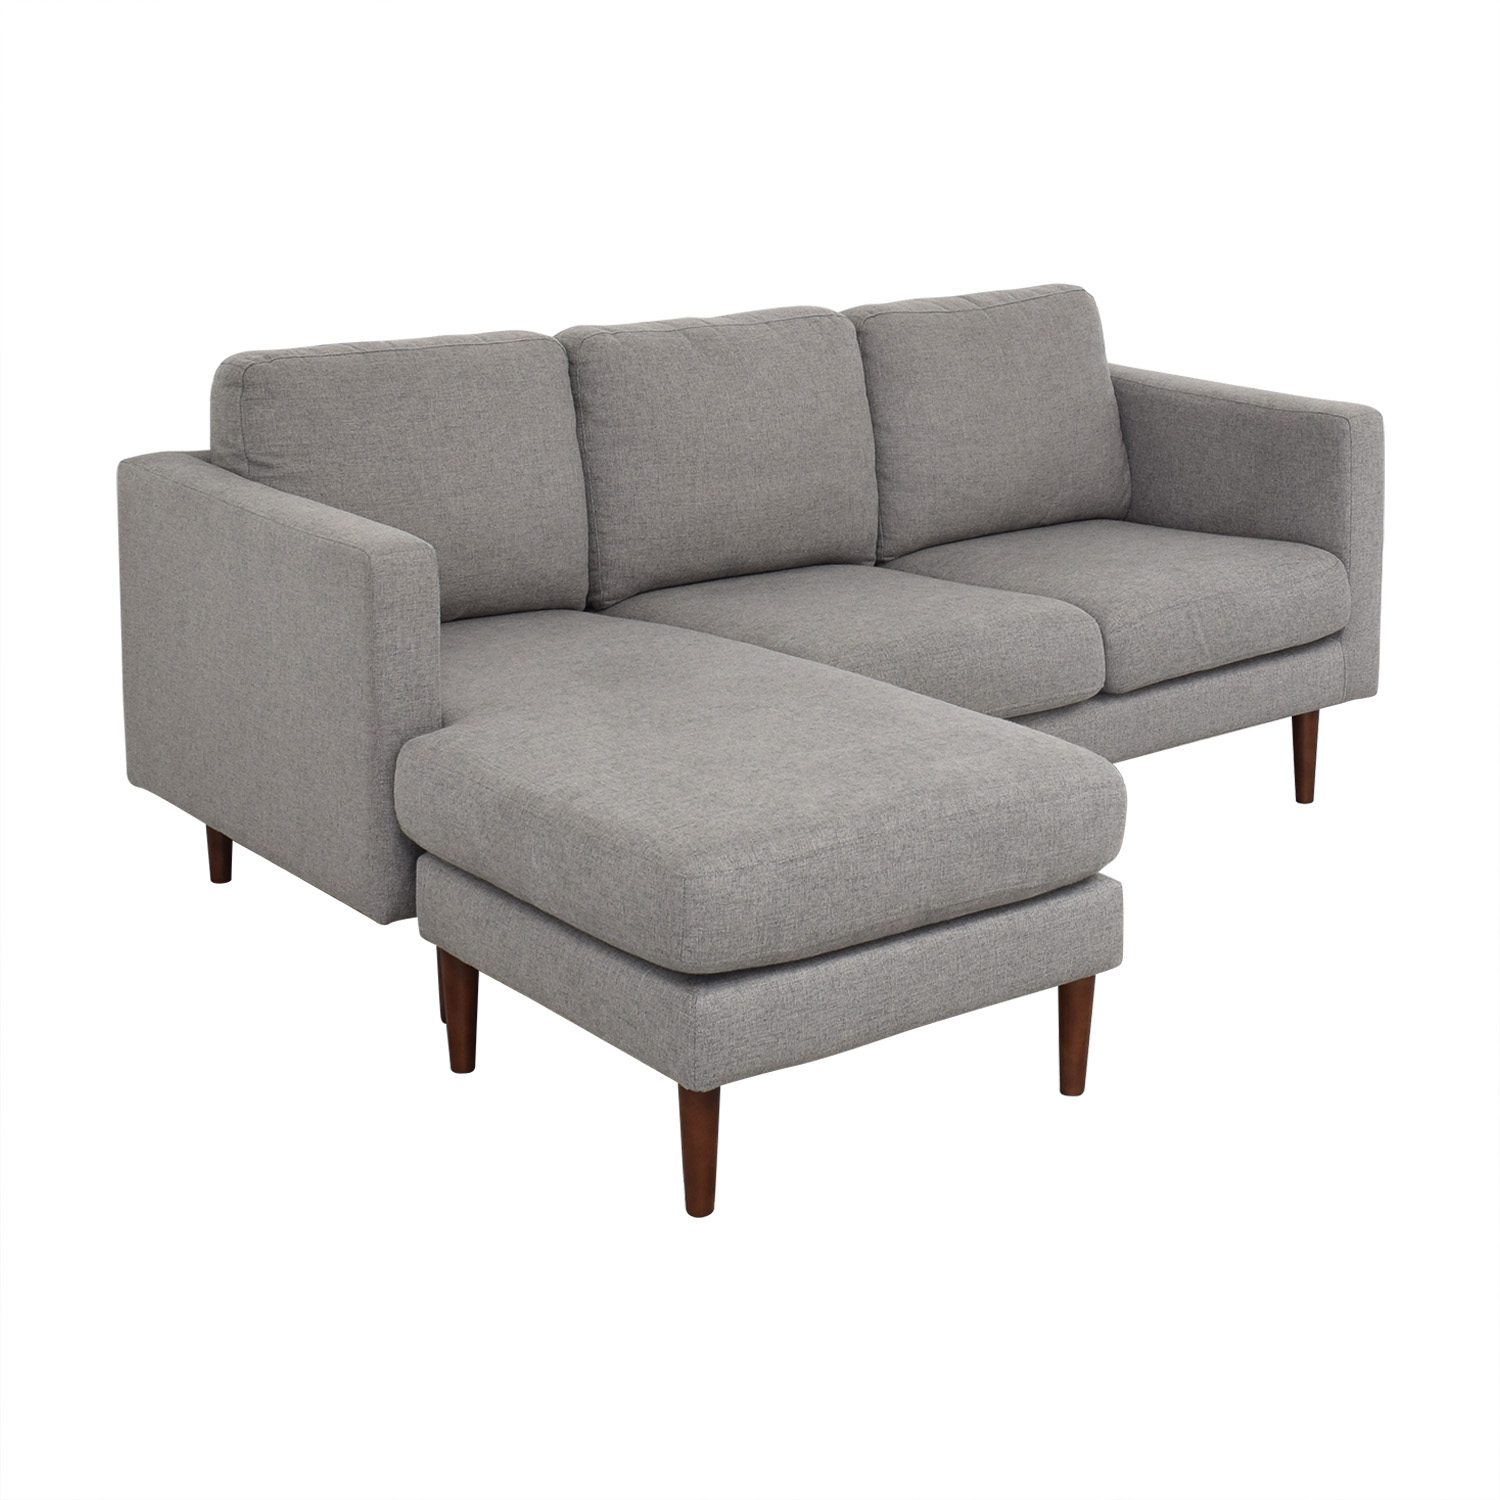 Rivet Revolve Modern Upholstered Sectional with Chaise Lounge / Sectionals